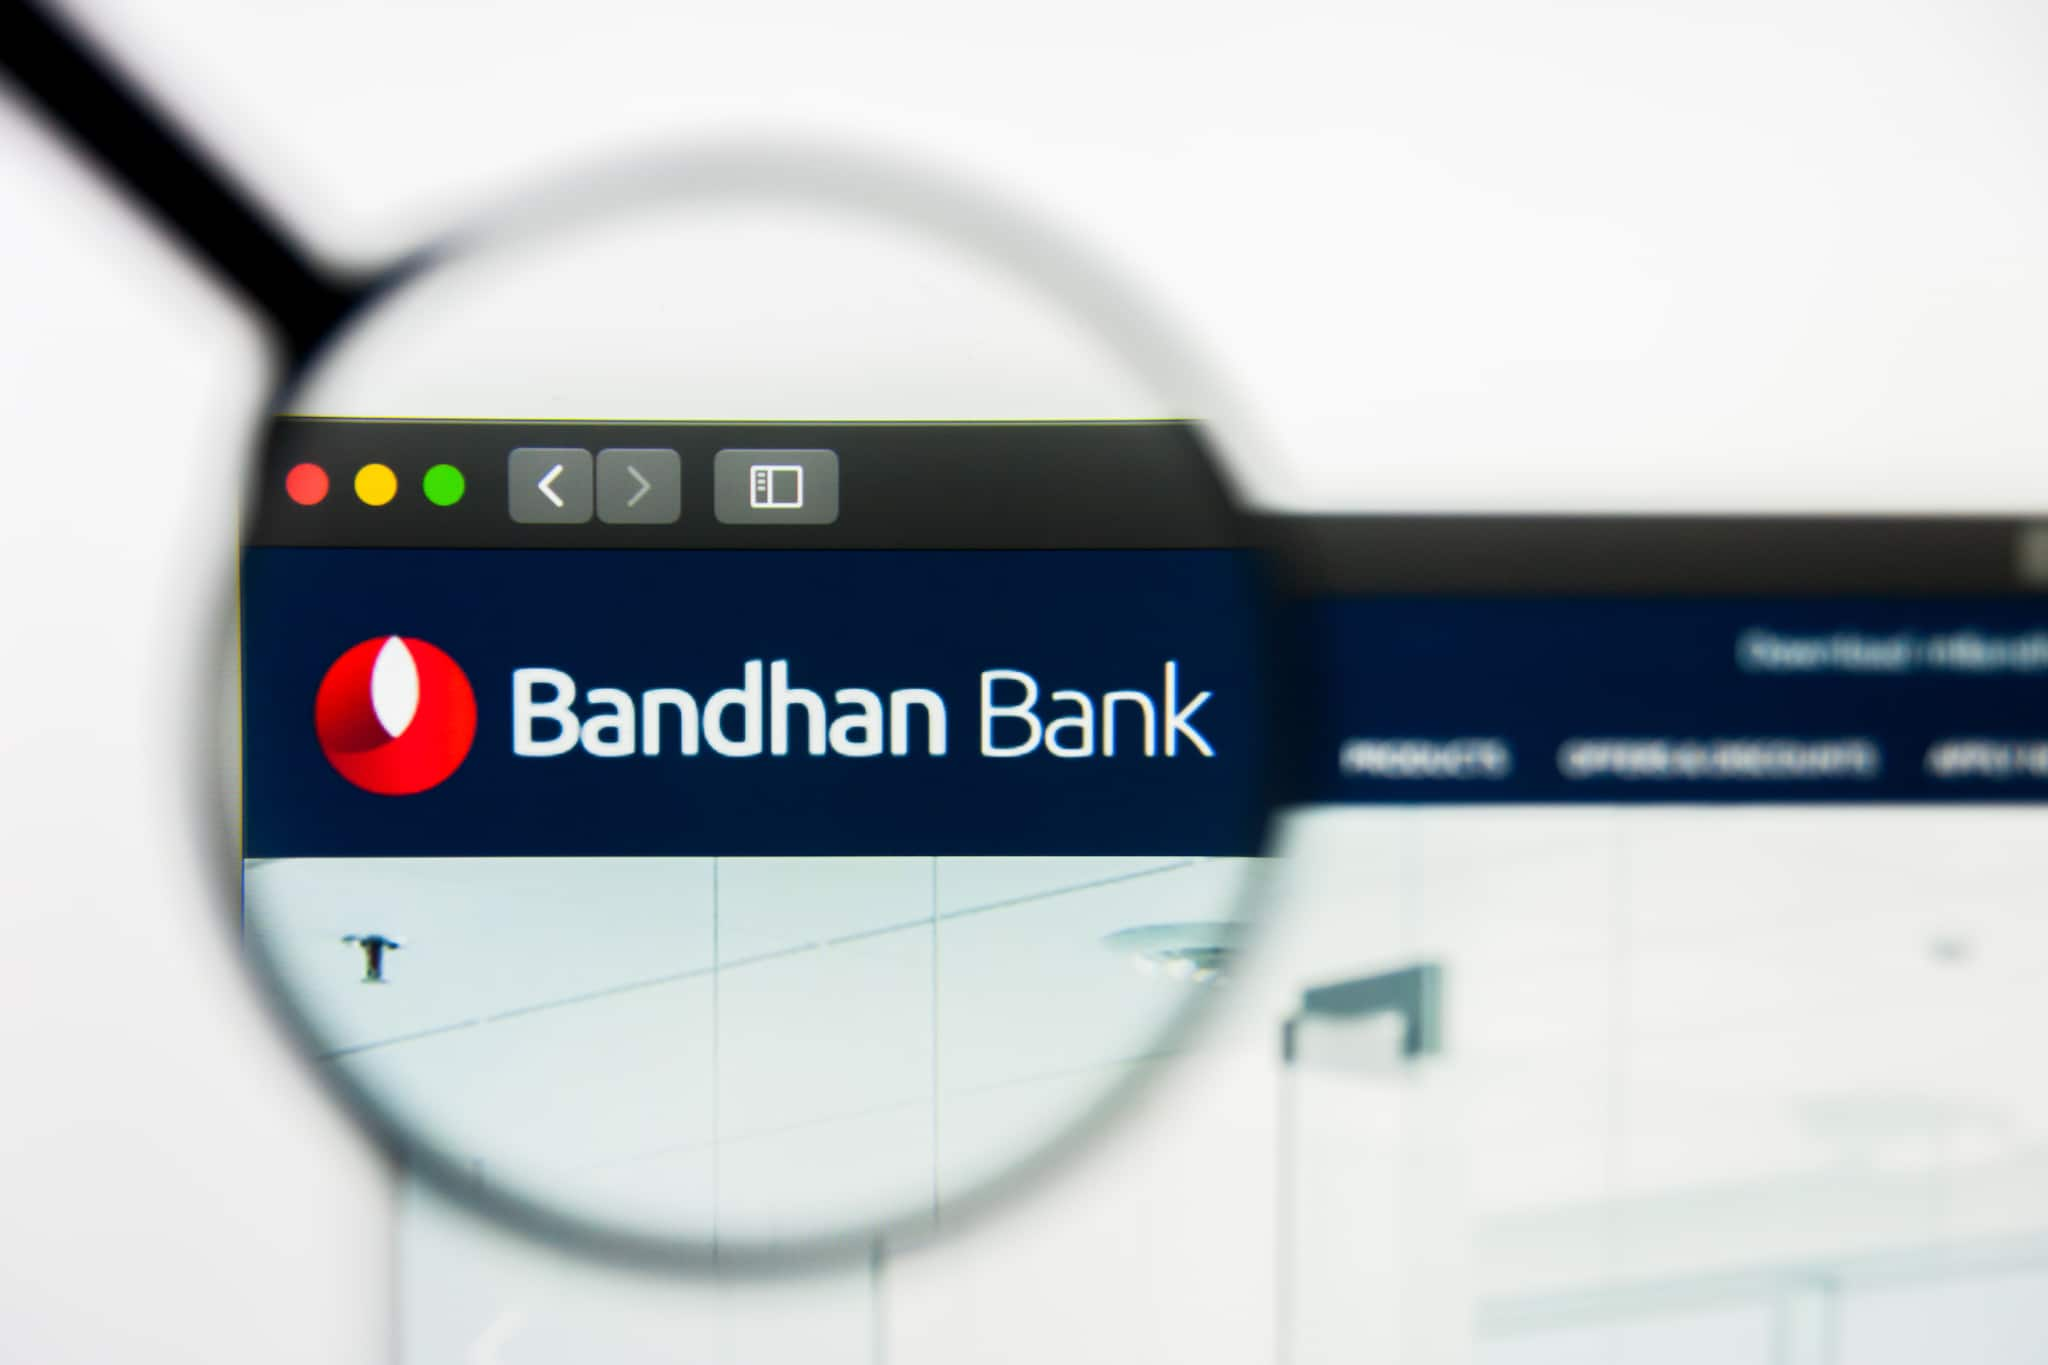 Analysis | Bandhan Bank has retained momentum in a tough market, but watch out for asset quality